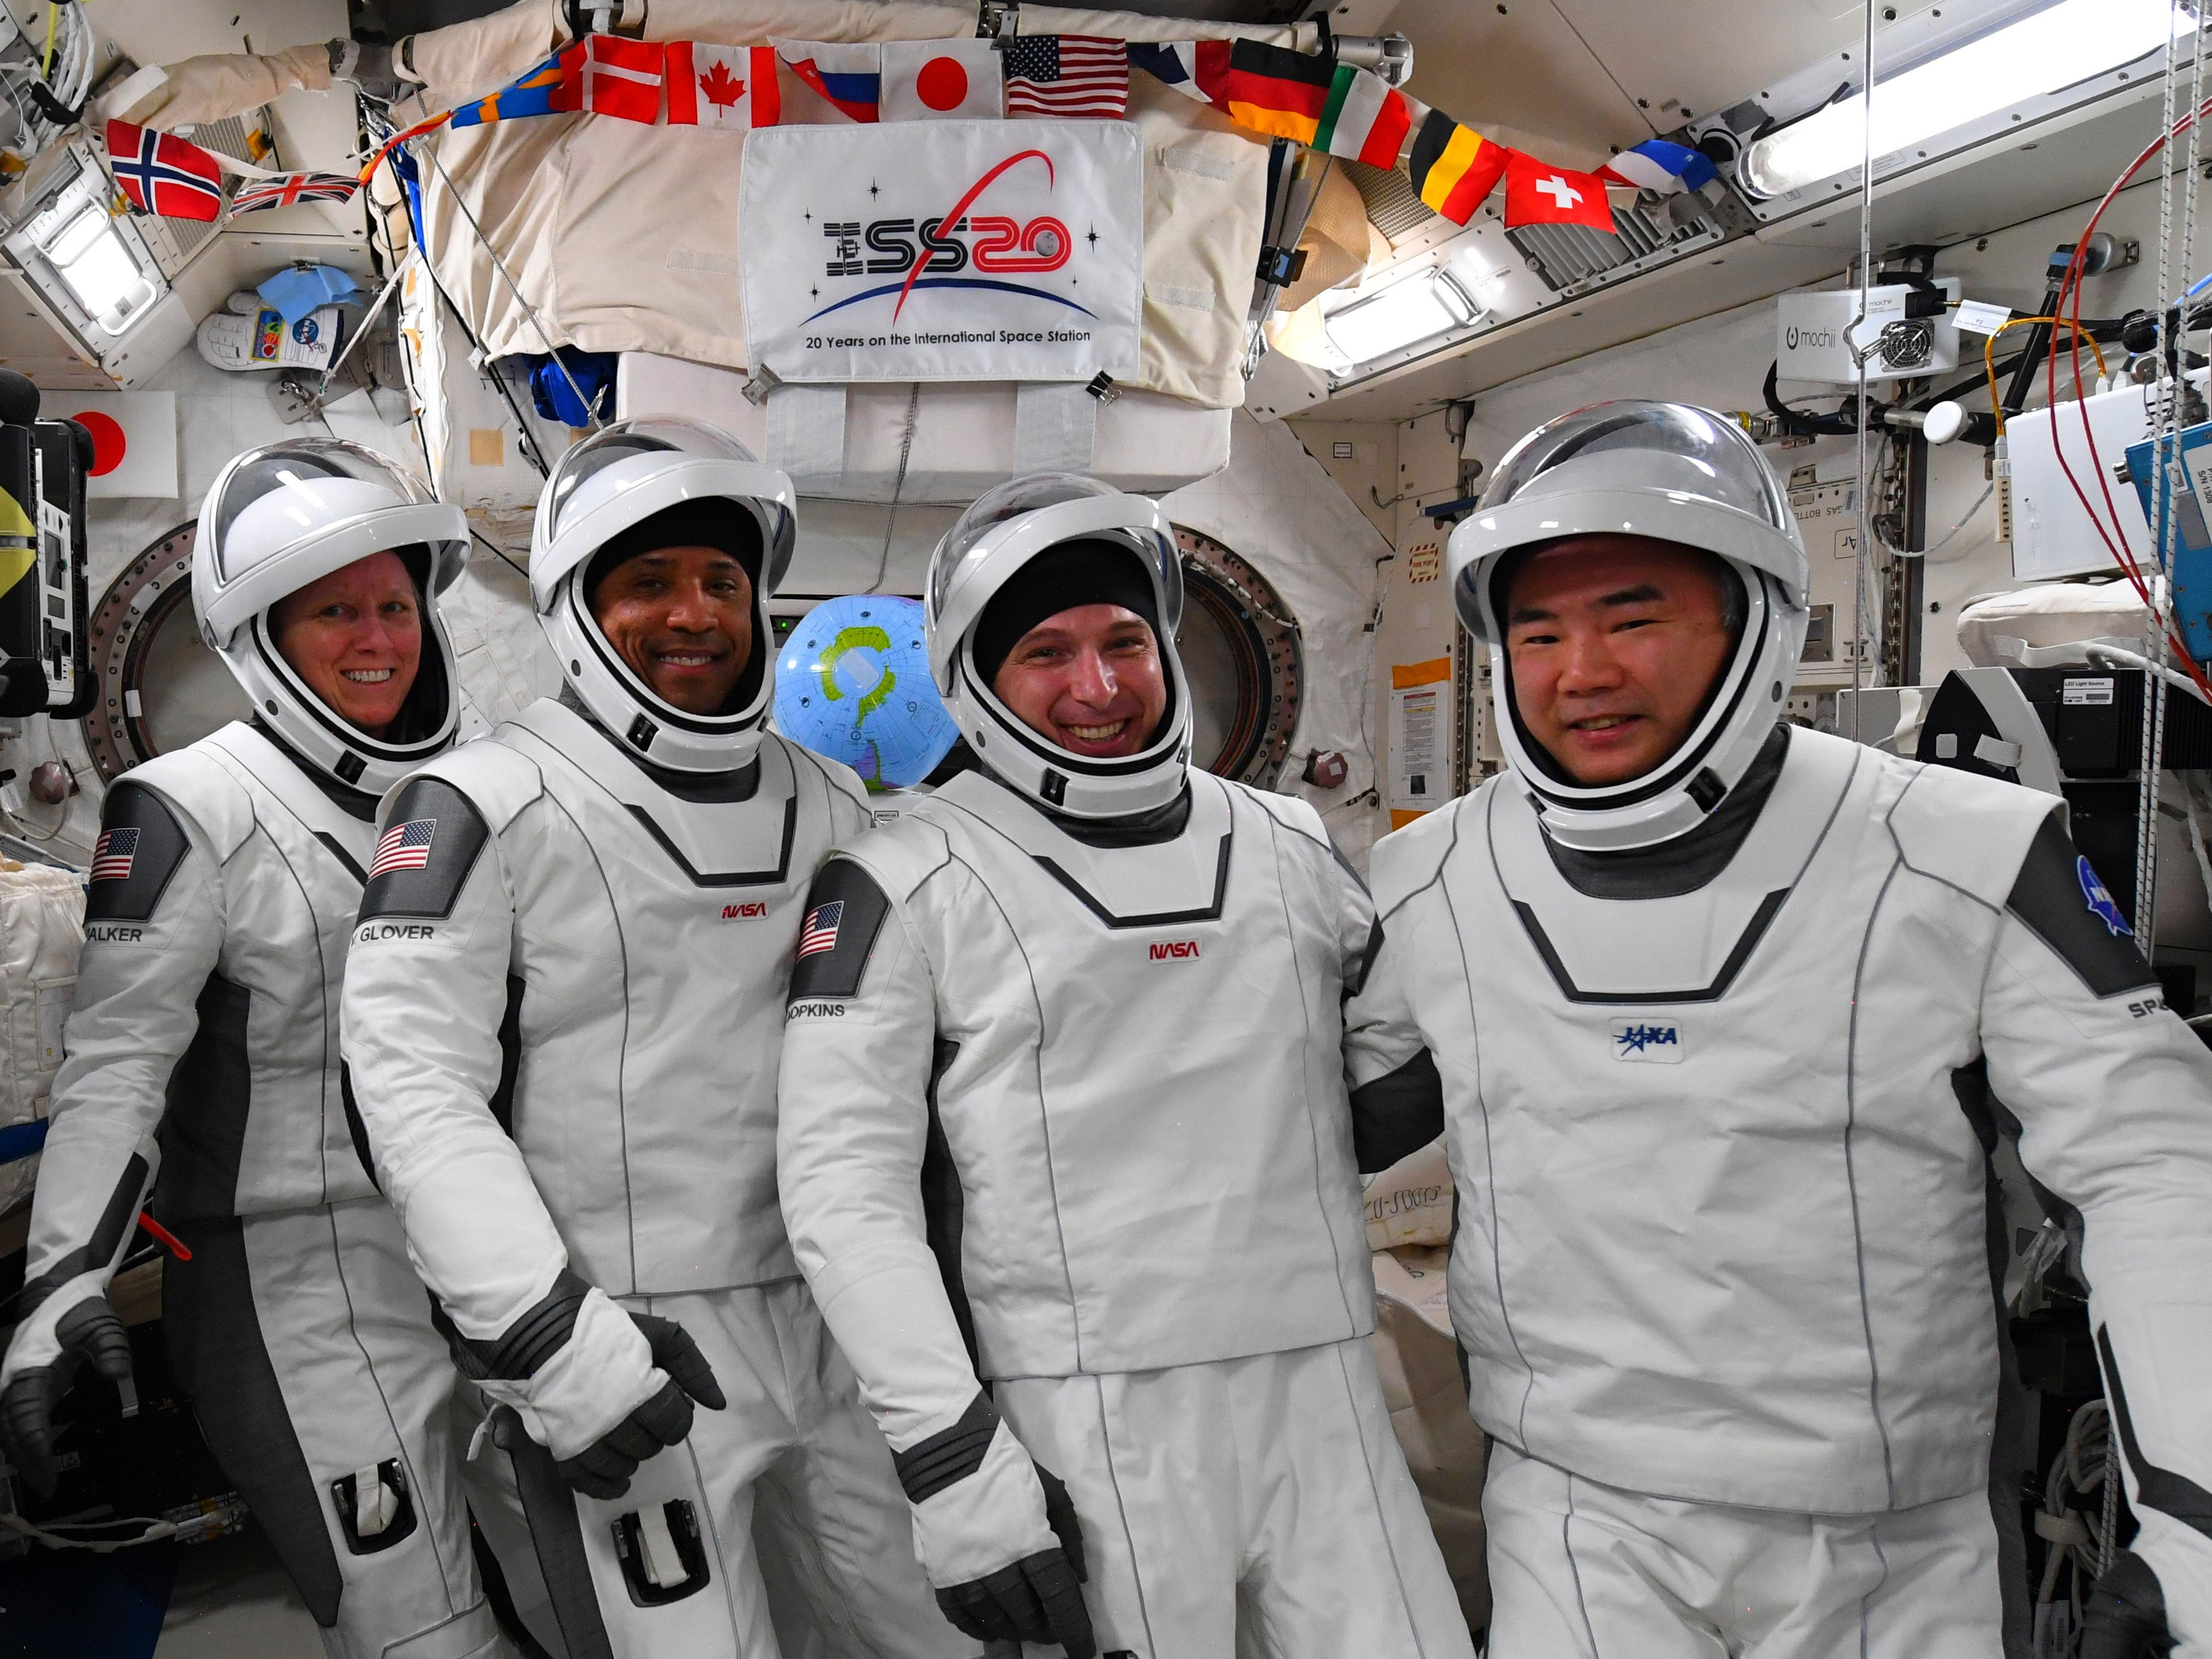 The Crew-1 astronauts, Shannon Walker, Vic Glover, Mike Hopkins, and Soichi Noguchi, don their spacesuits on Monday.